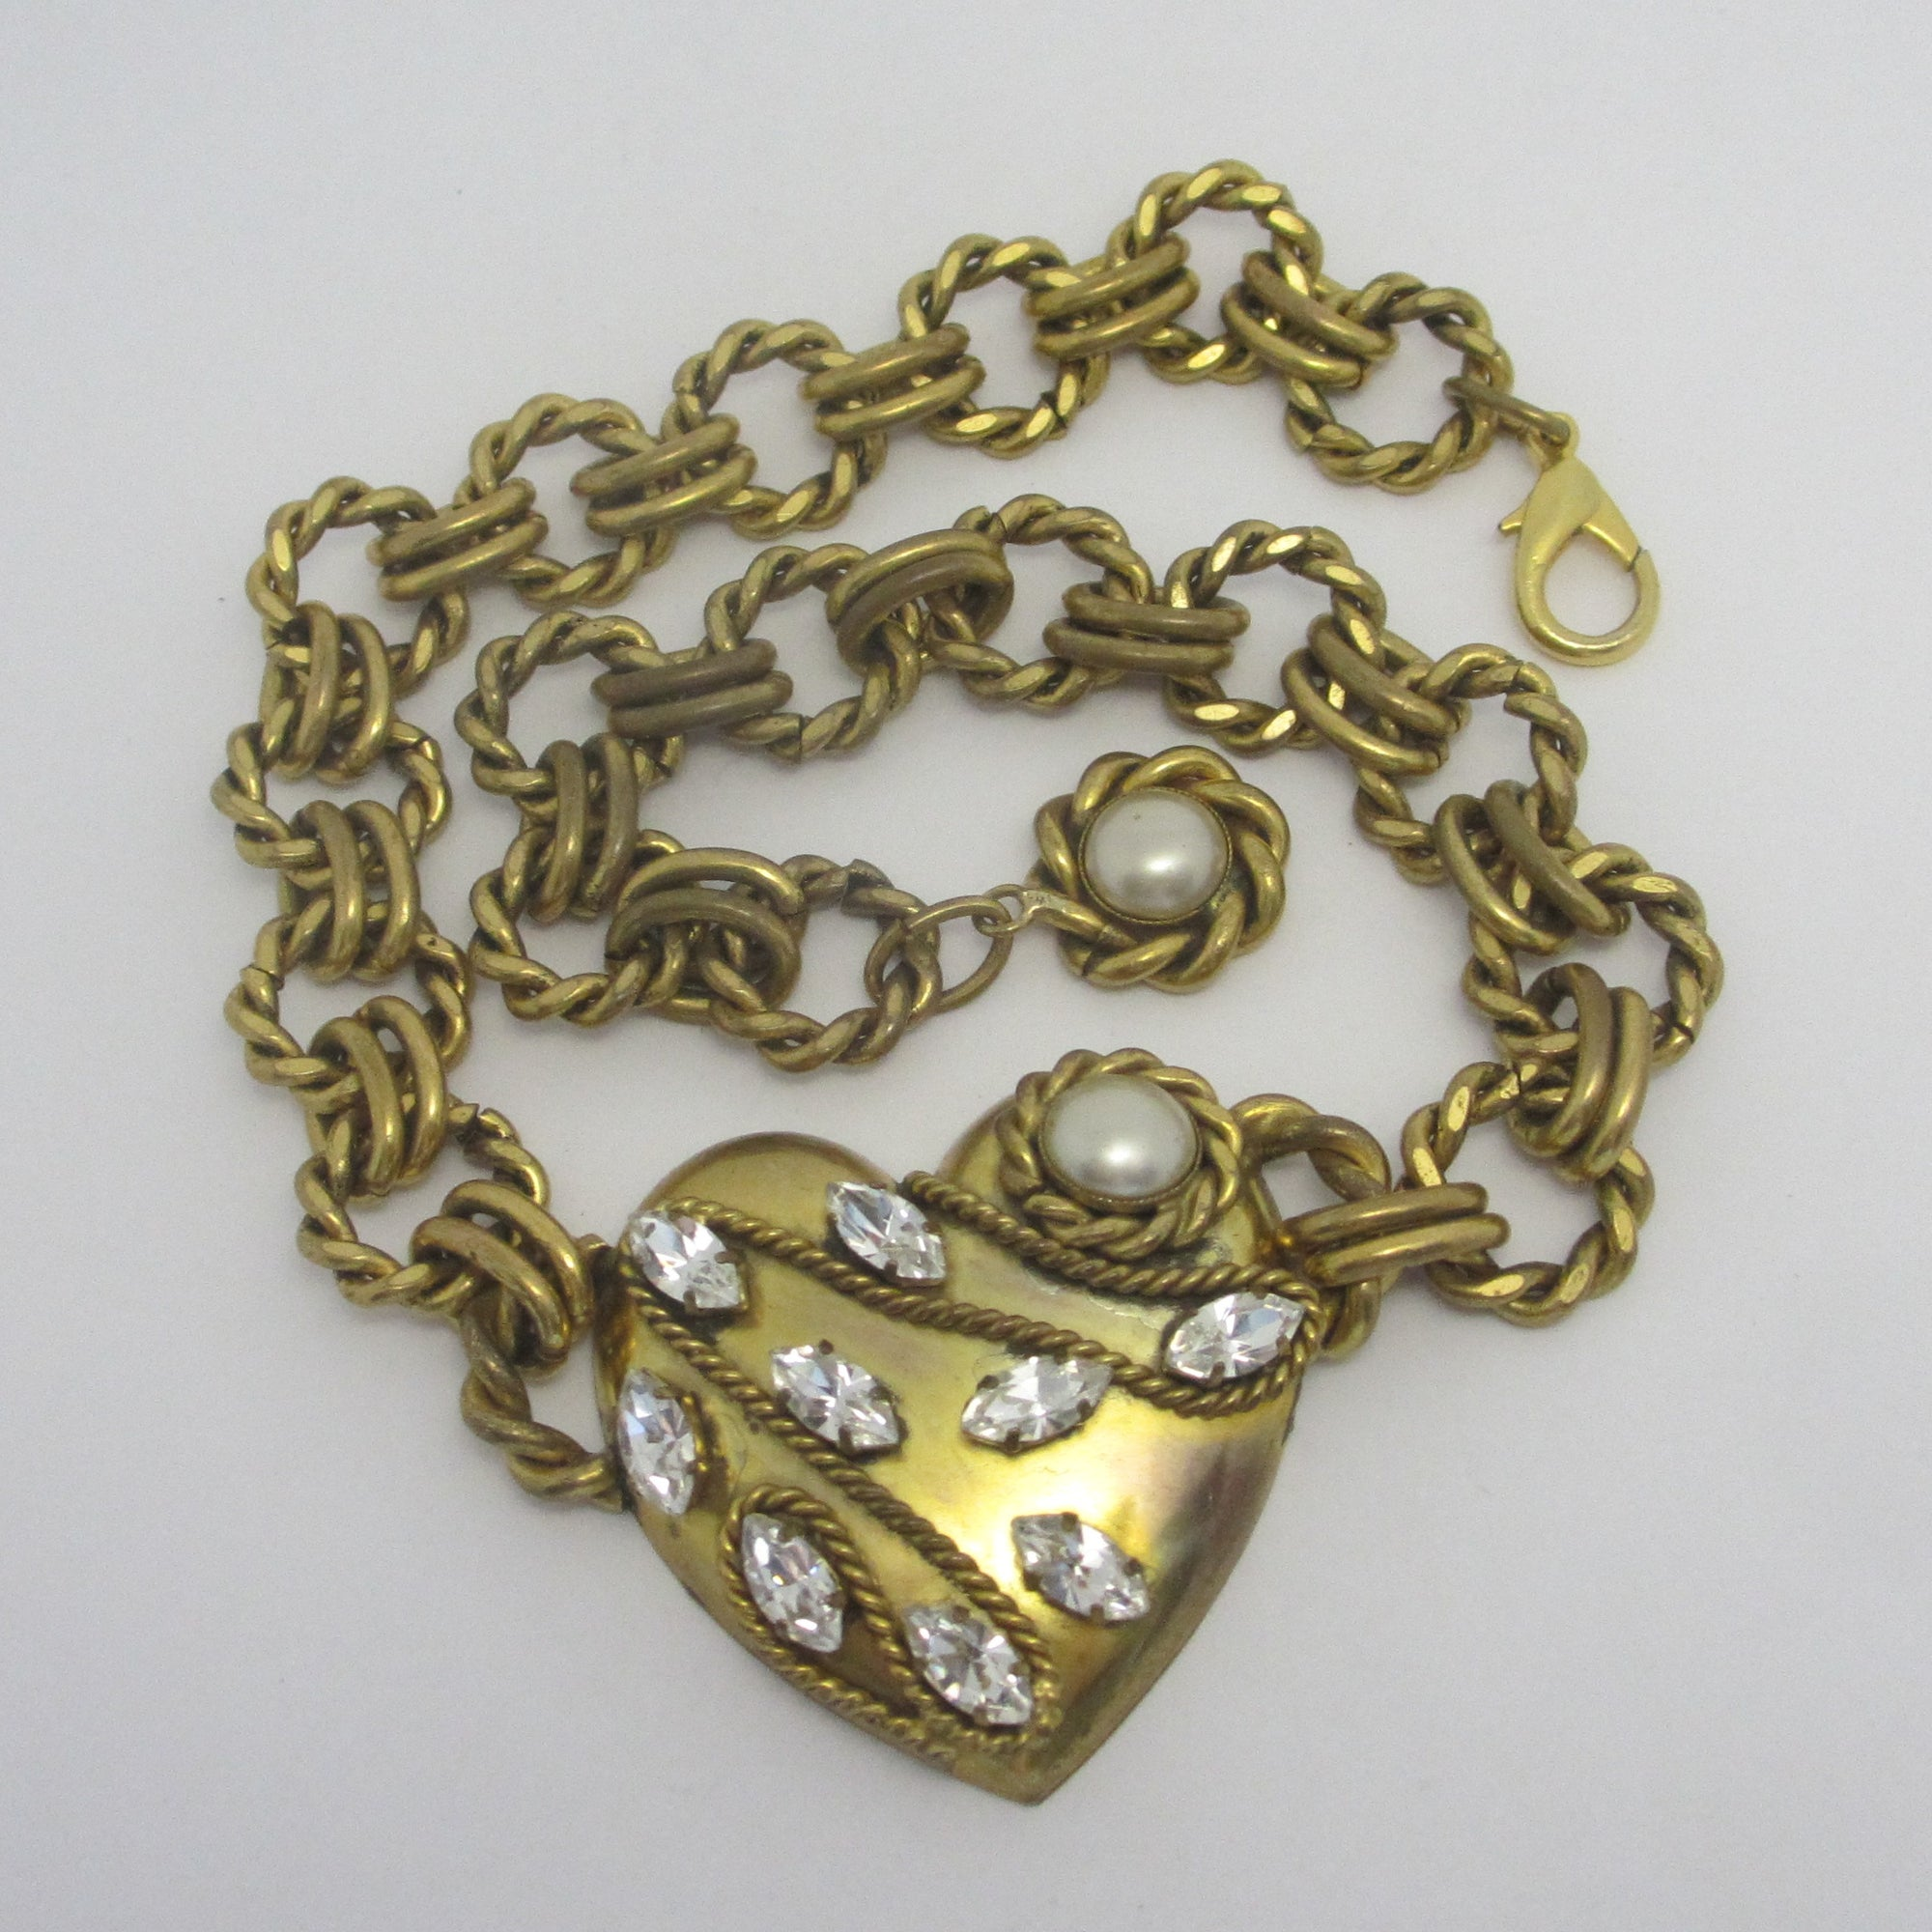 Heart Pendant Necklace by Butler & Wilson Vintage c1980